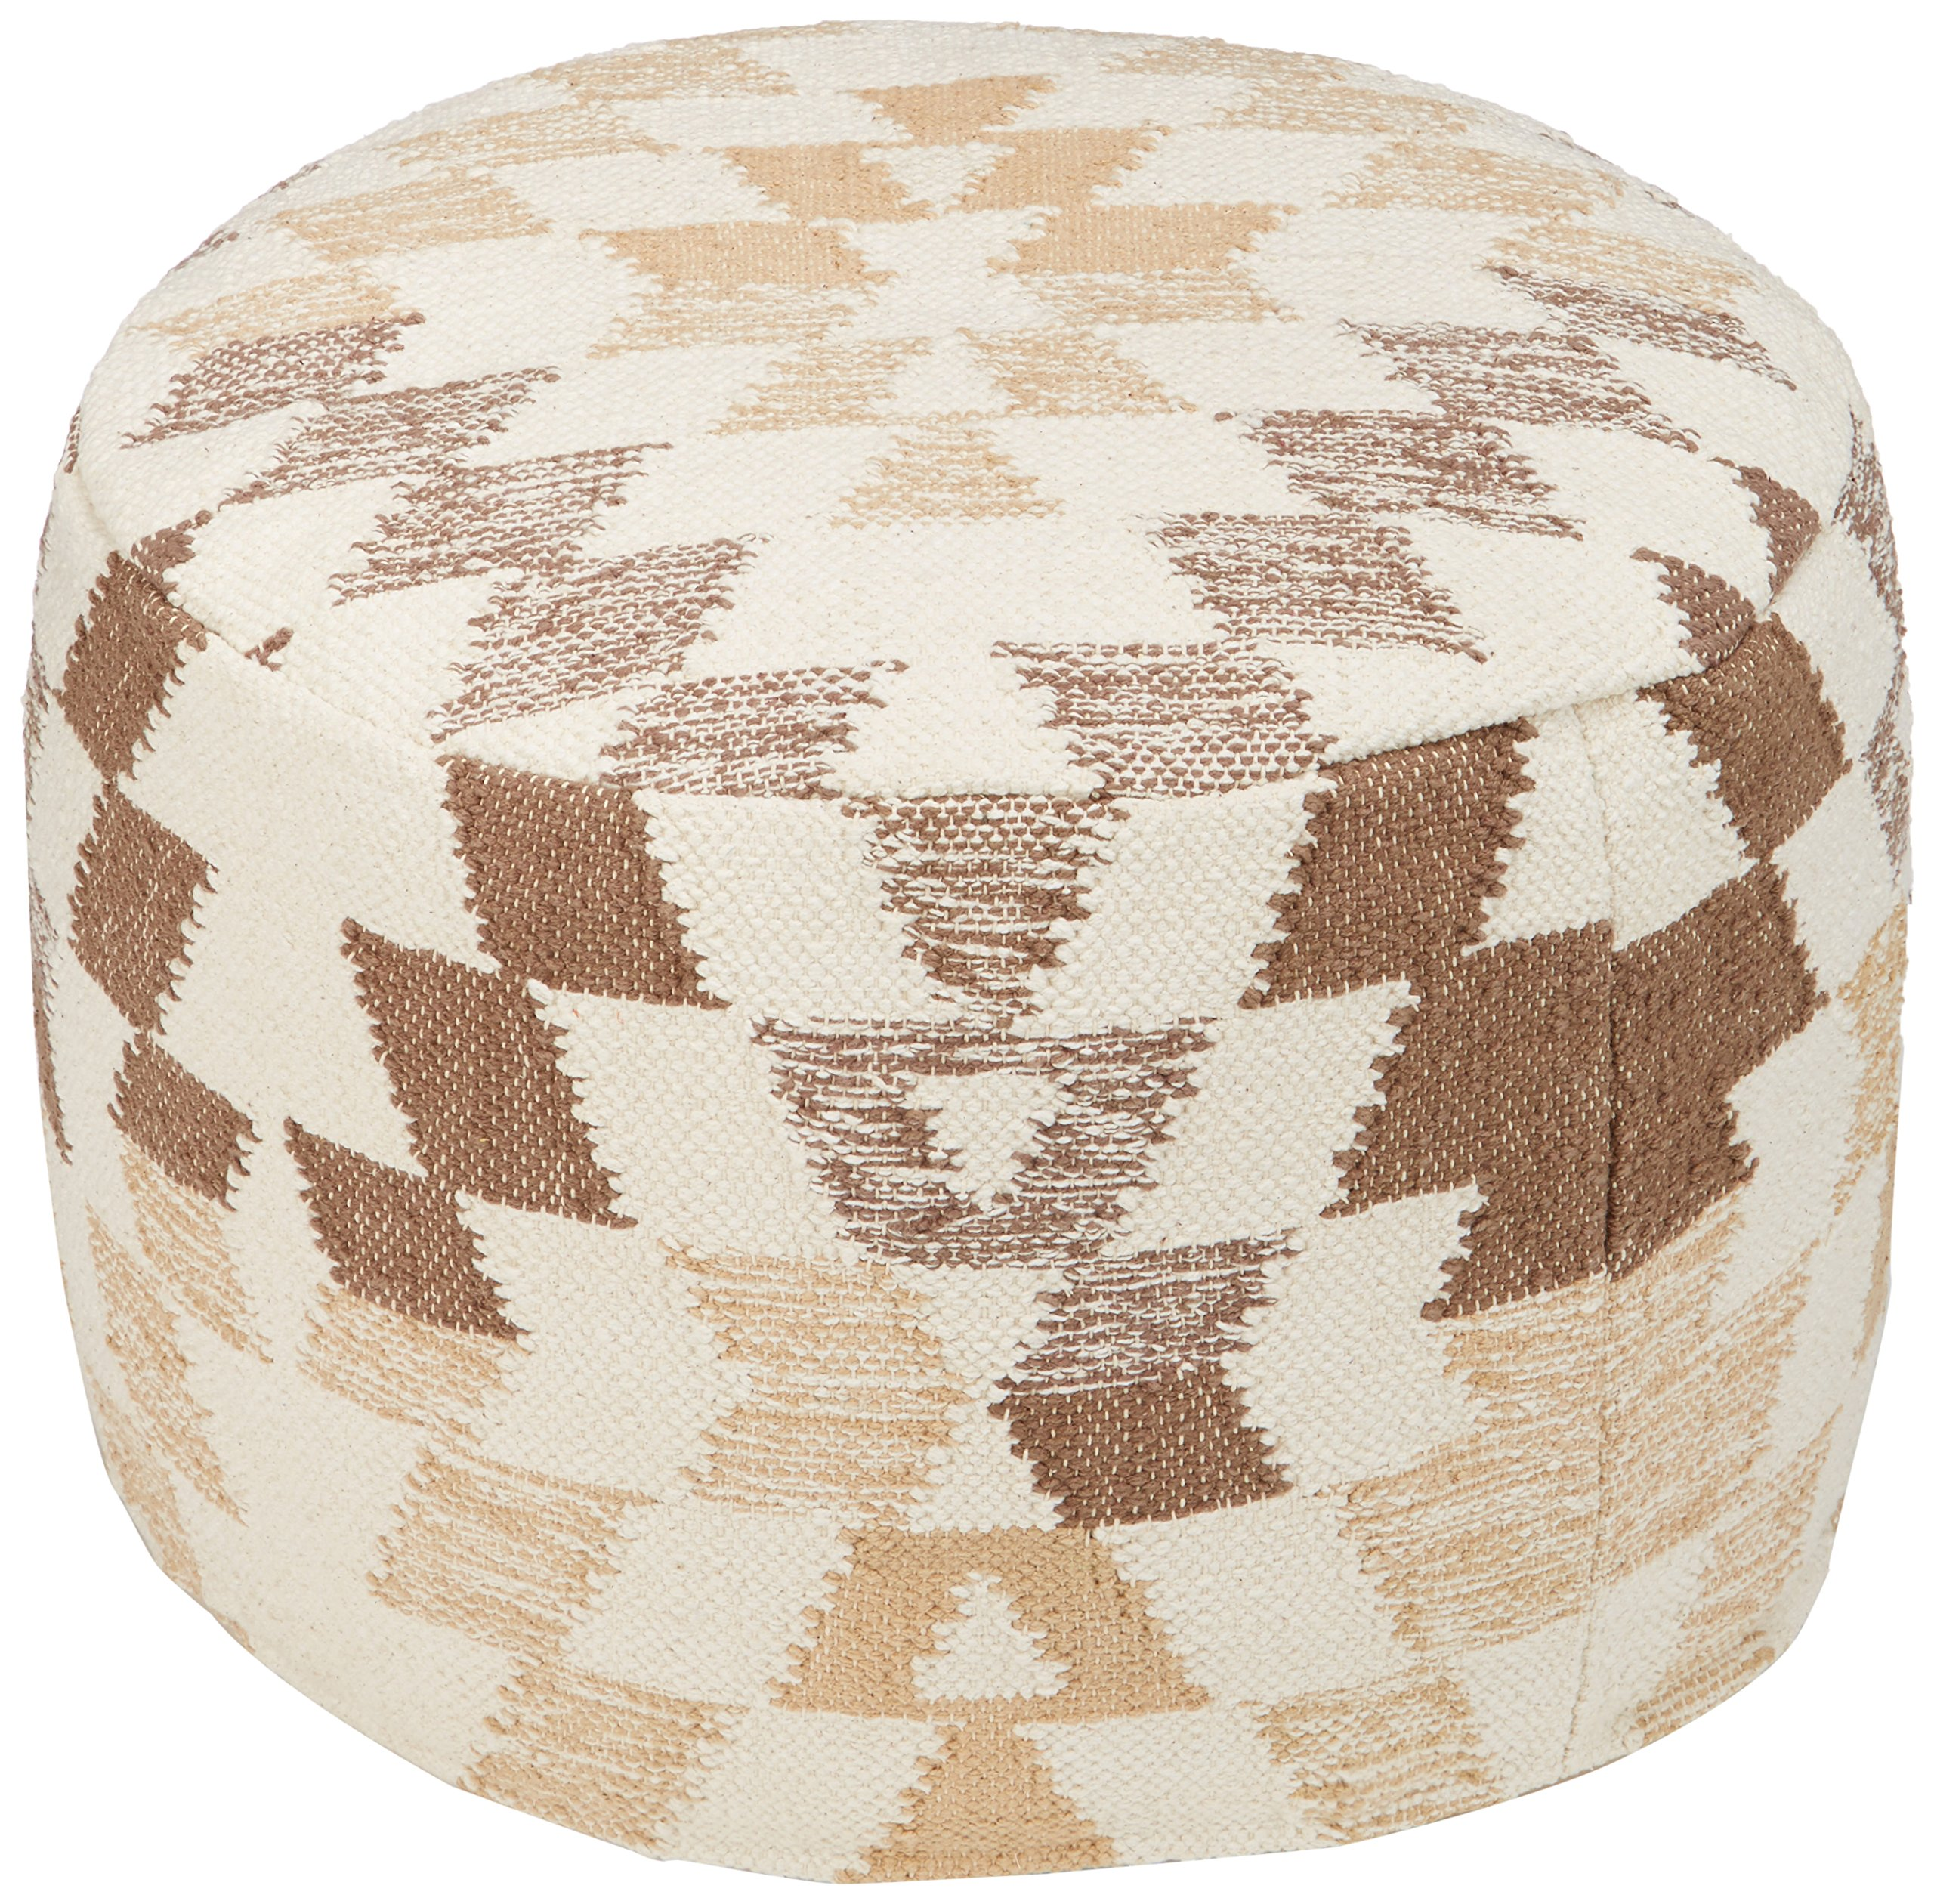 Ashley Furniture Signature Design - Abraham Pouf - Handmade - Imported - Traditional - White and Brown by Signature Design by Ashley (Image #2)